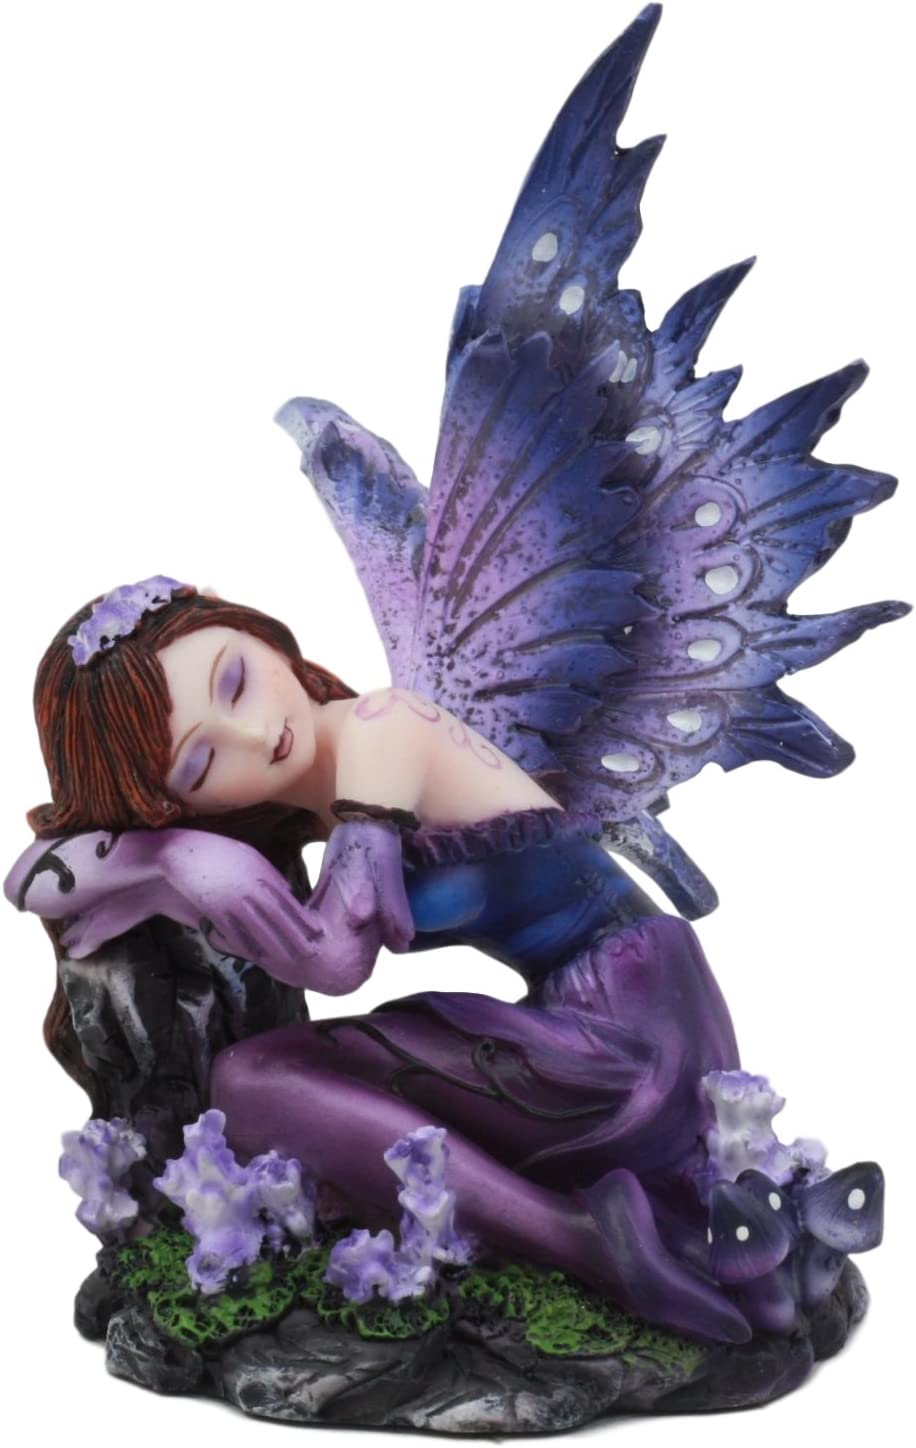 "Ebros Sleeping Purple Lavender Girl Fairy Garden Statue 4.5"" Tall Twilight FAE Pixie Fantasy Collectible Figurine"